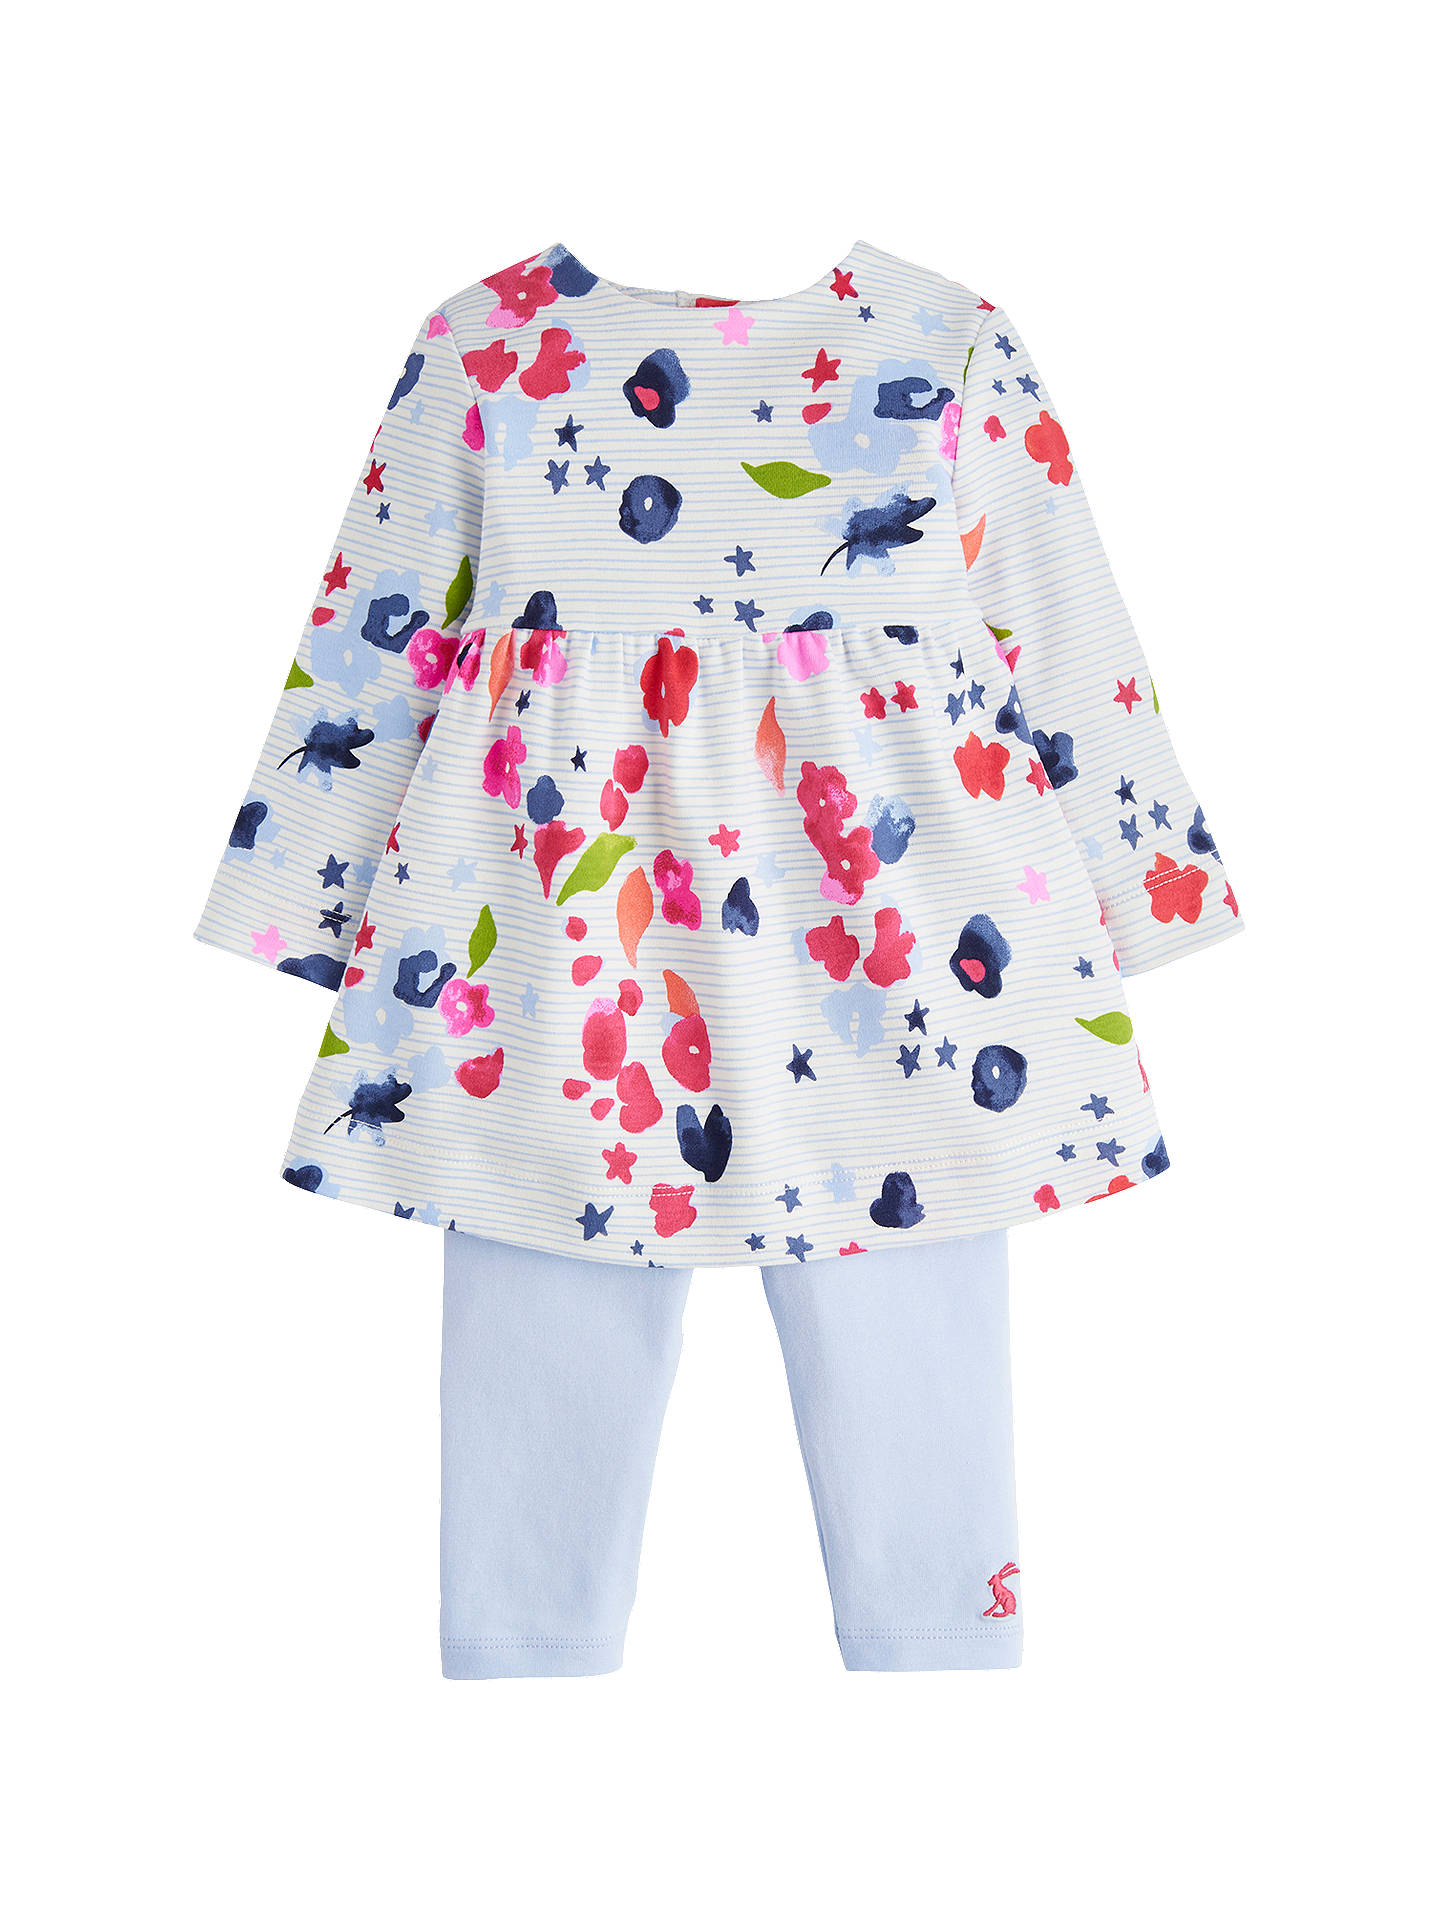 39c17334a Baby Joule Floral Stripe Dress Set, Blue/Multi at John Lewis & Partners